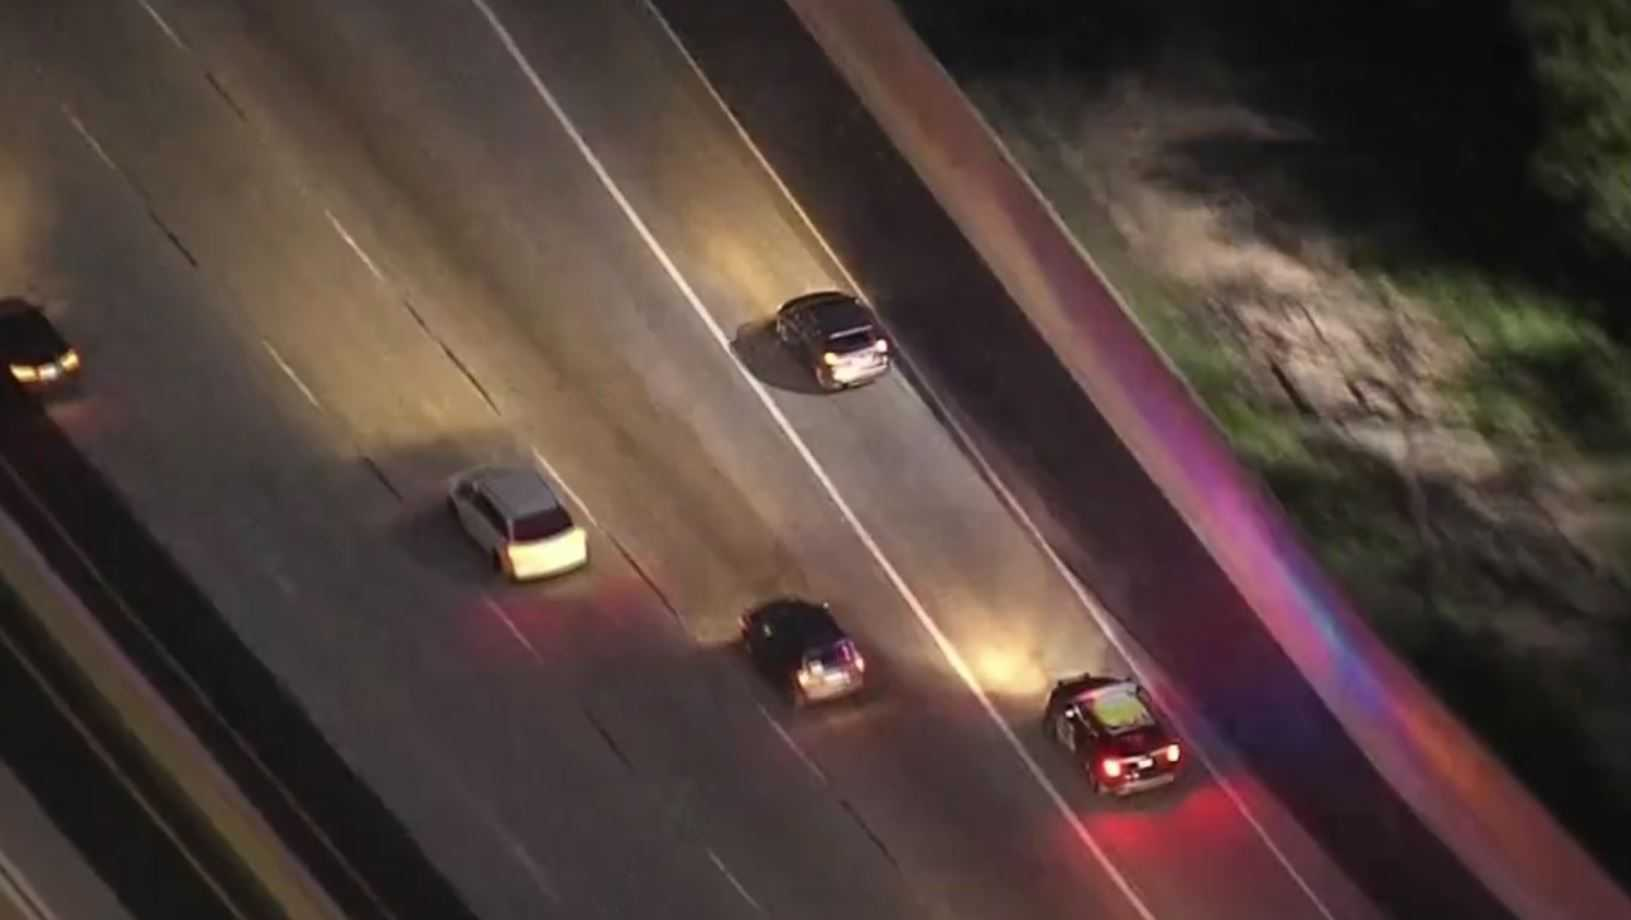 Car chase on Feb. 25, 2017 in Orange County area